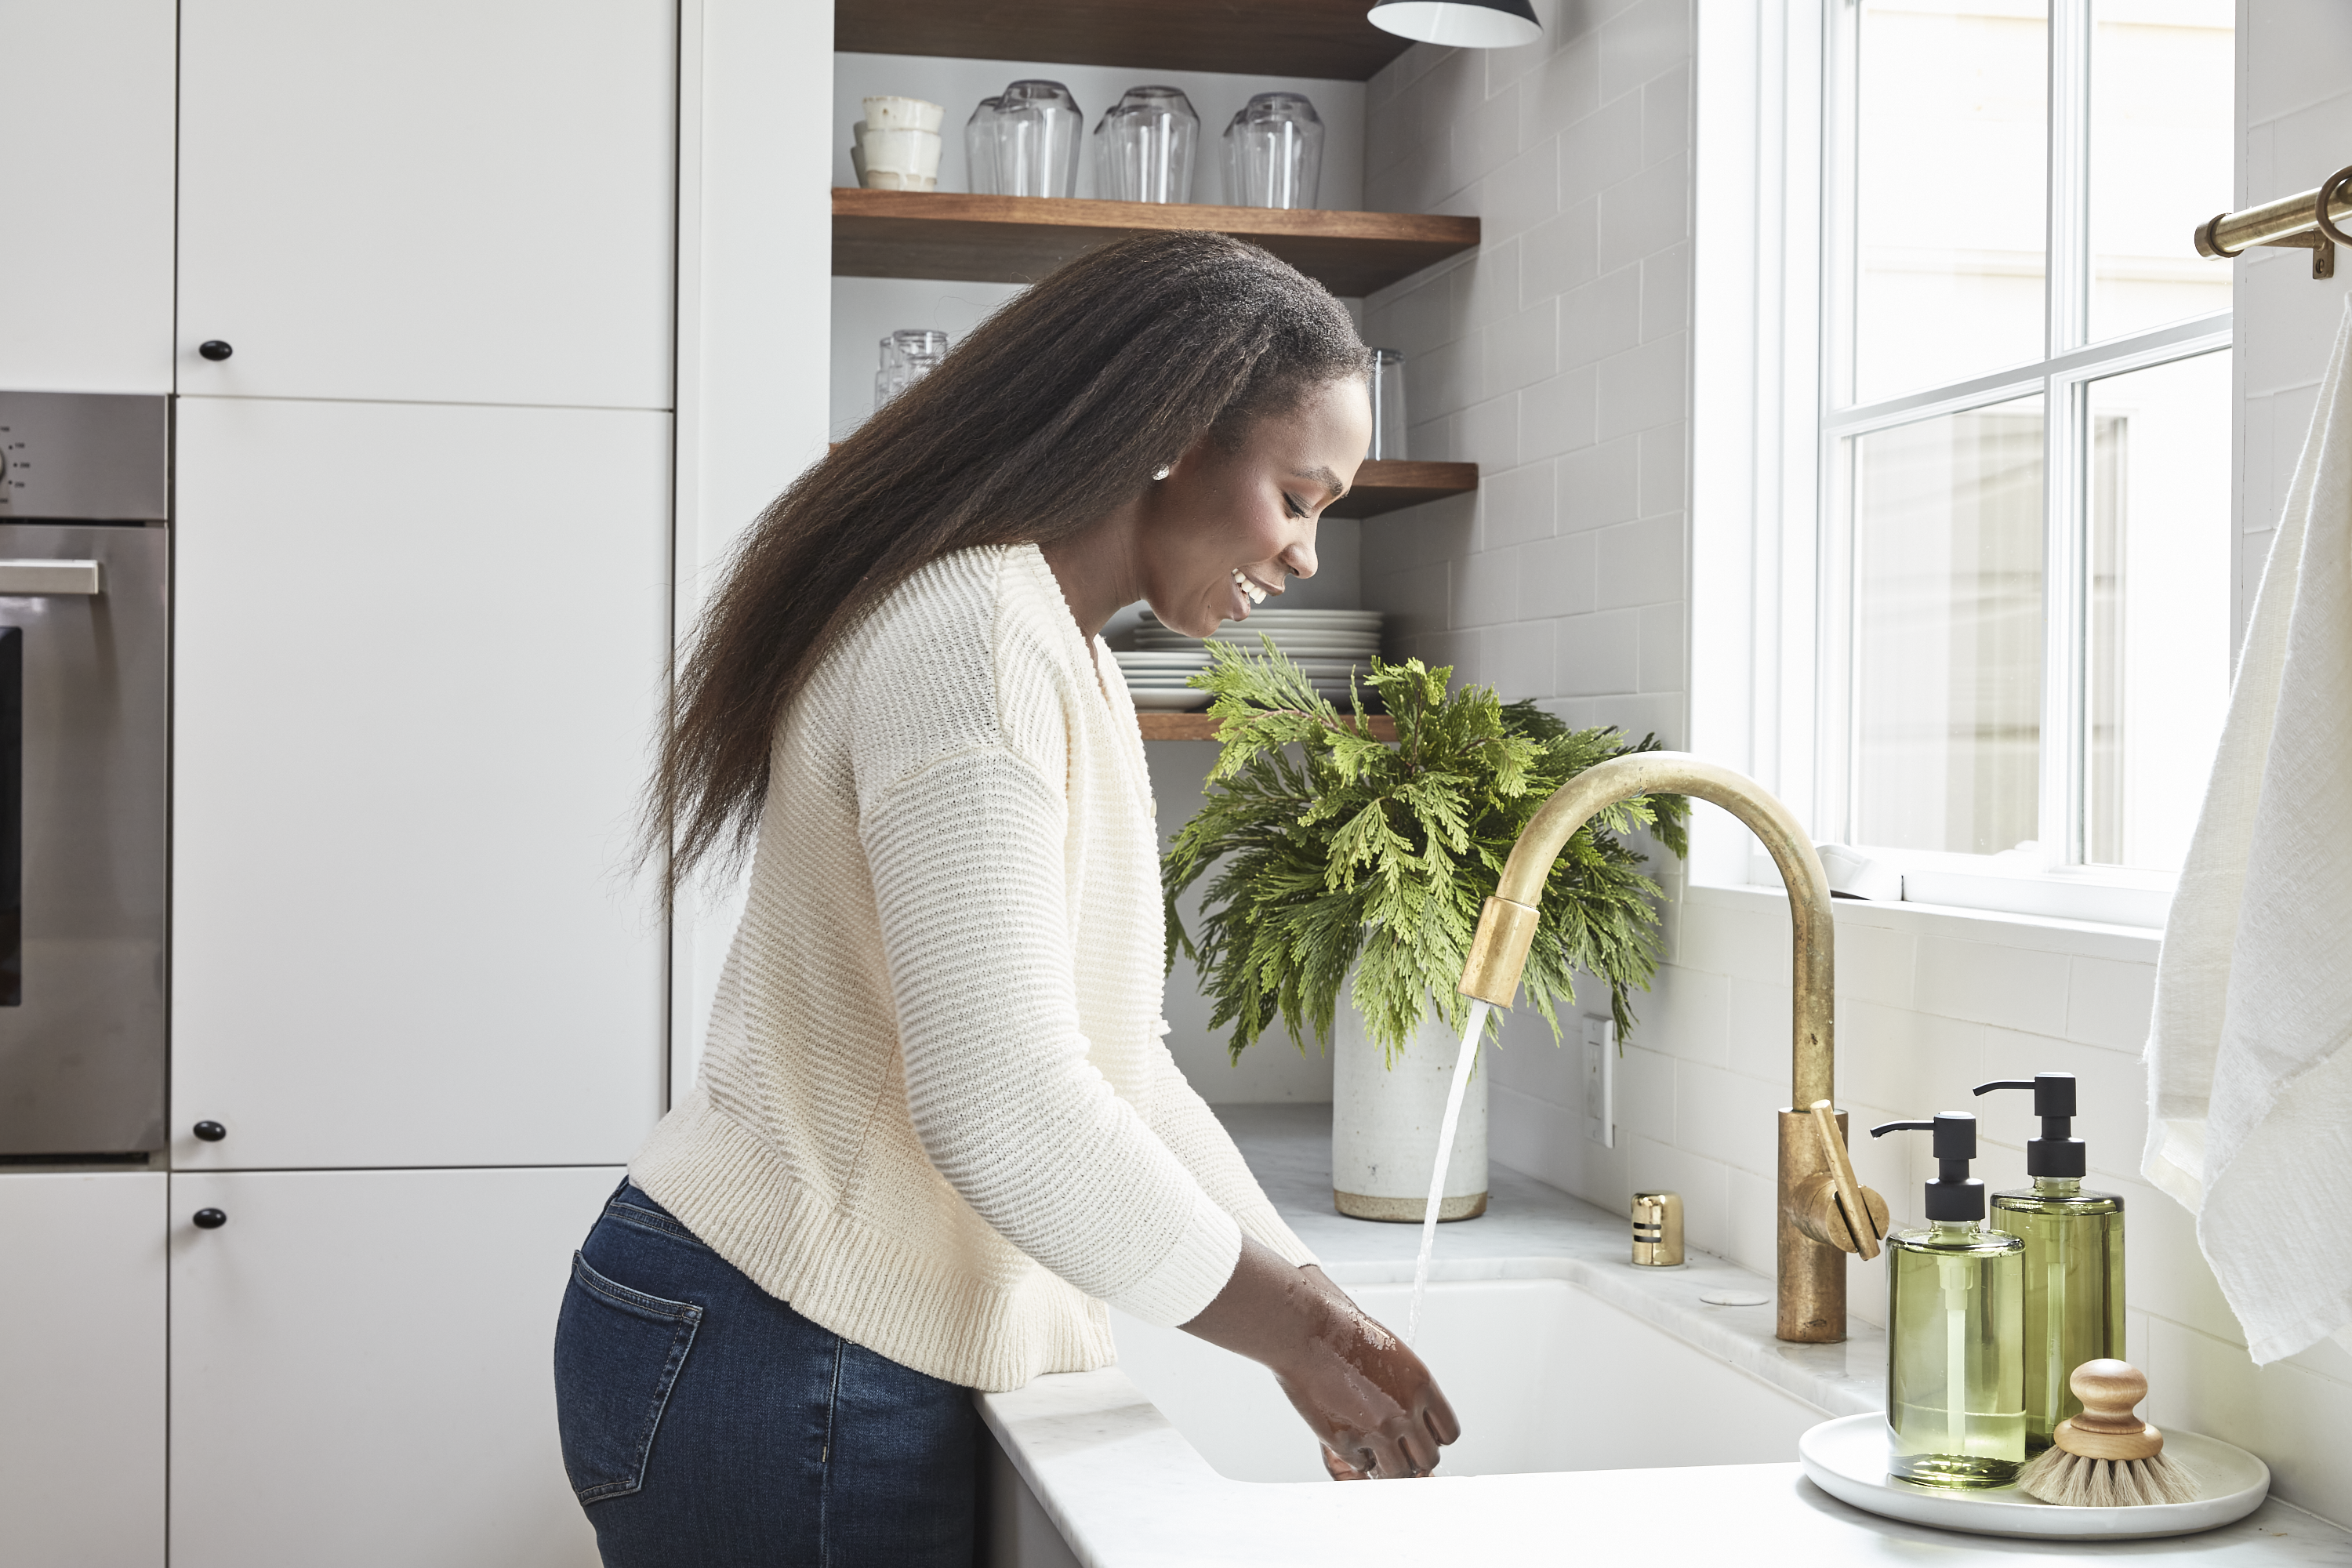 Woman washing hands at sink